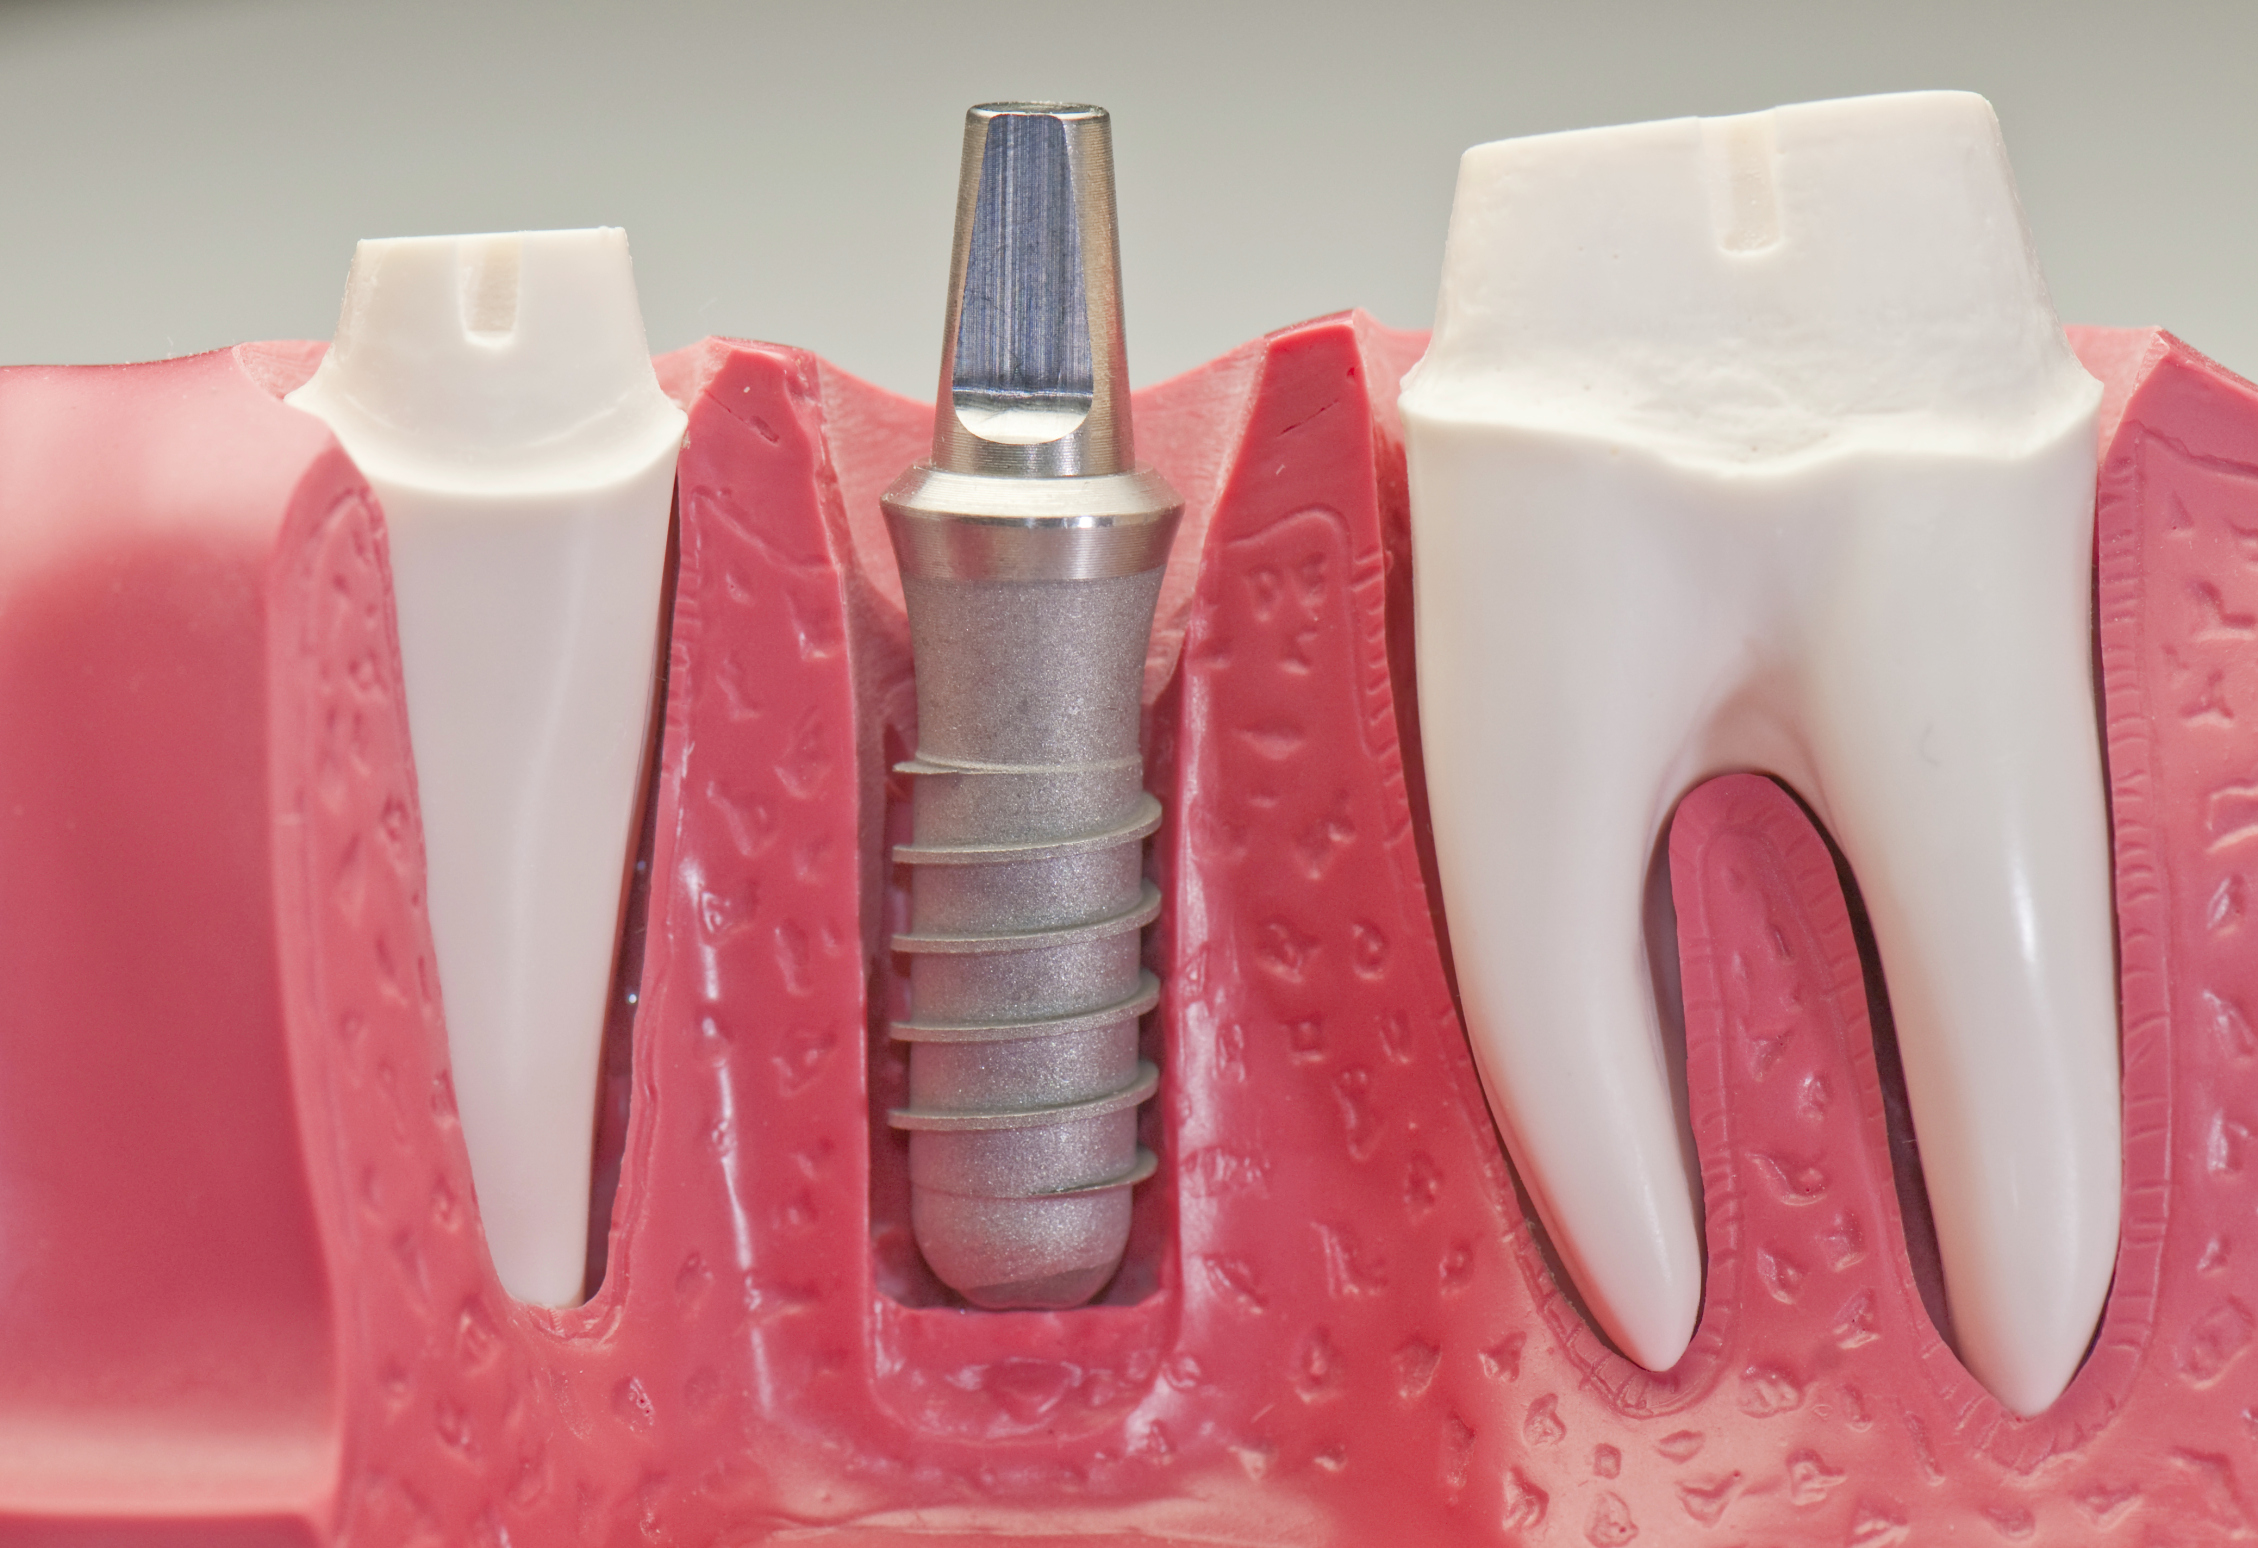 Where can I get dental implants in Pembroke Pines?